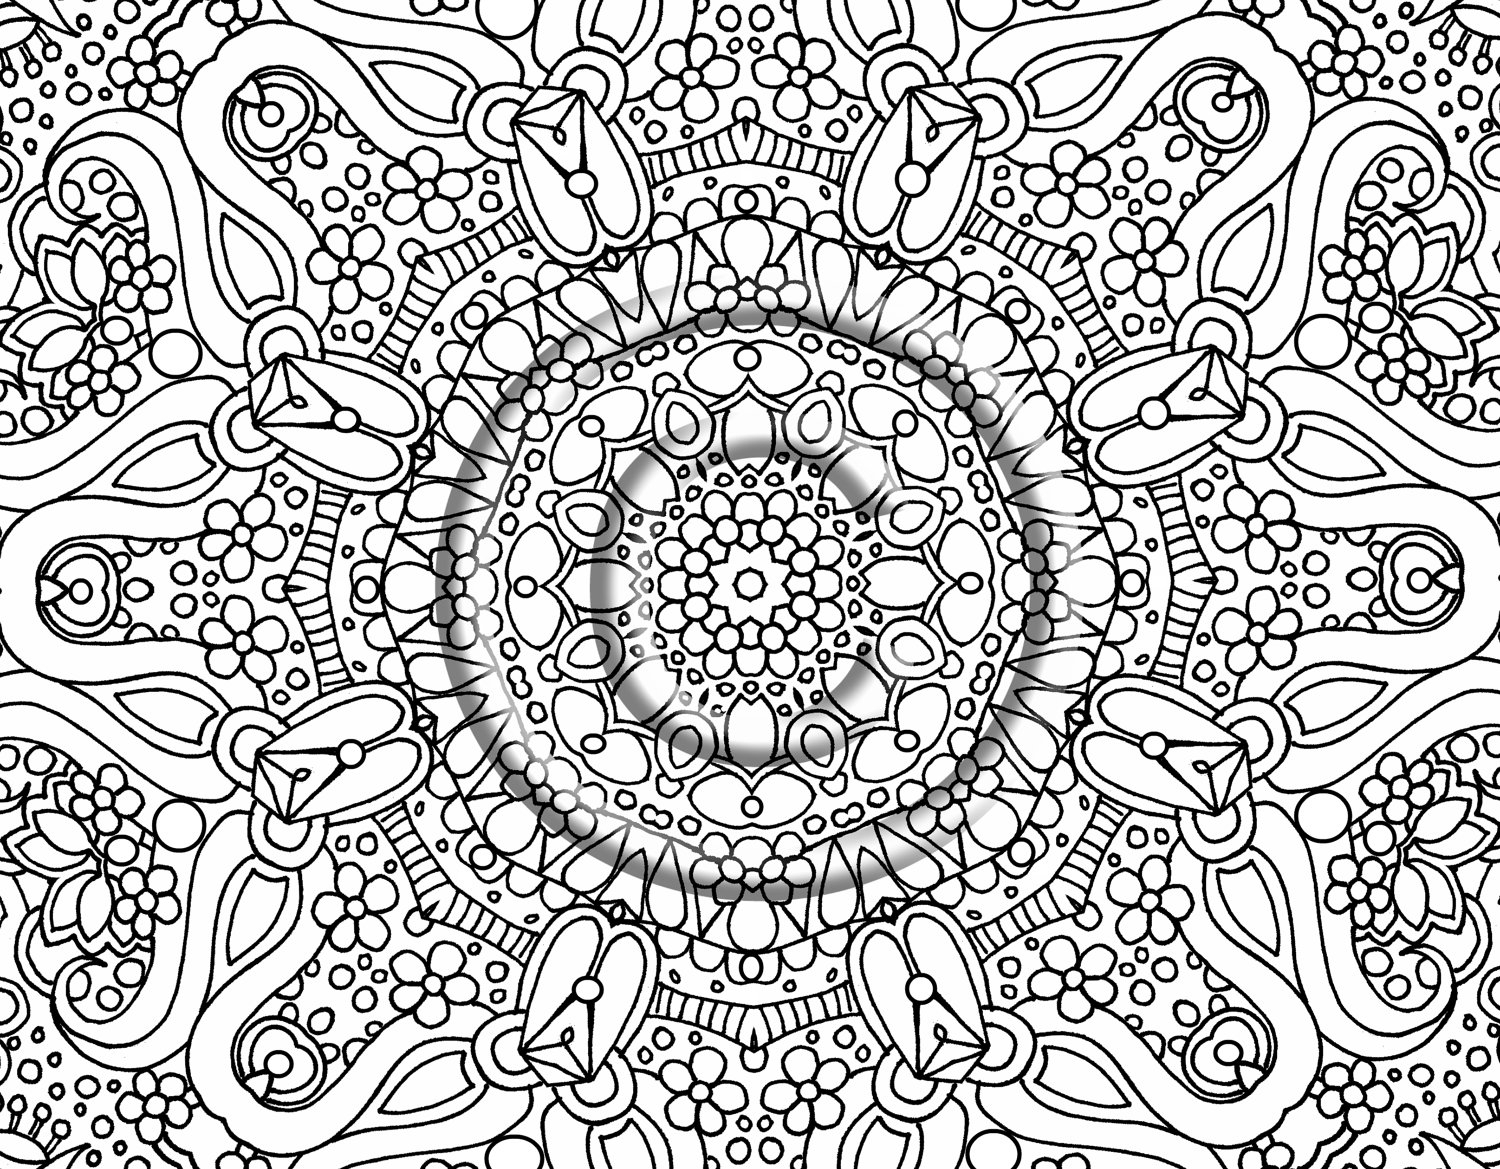 1500x1169 New Design Patterns Coloring Pages Free Coloring Pages Free